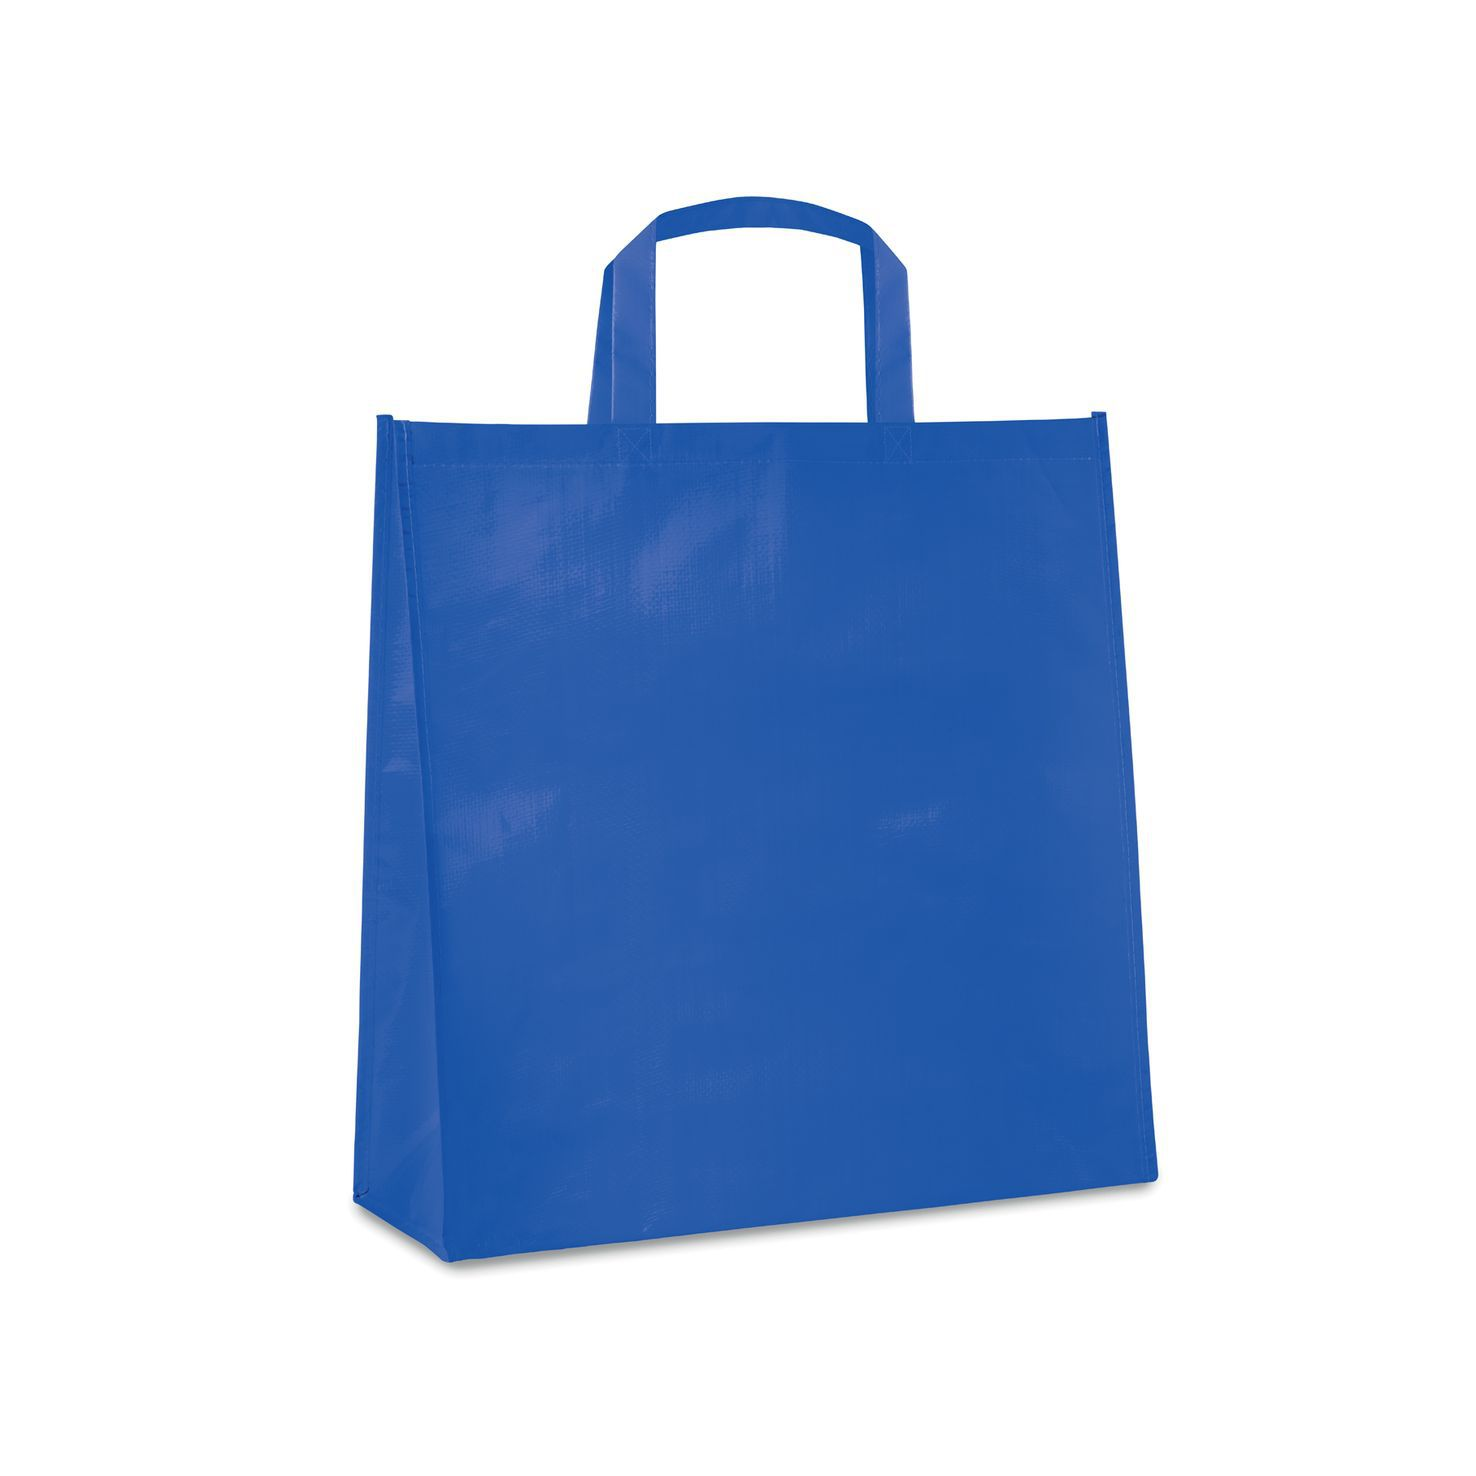 Koningsblauw Shopper | PP geweven | Gelamineerd | 120 grams